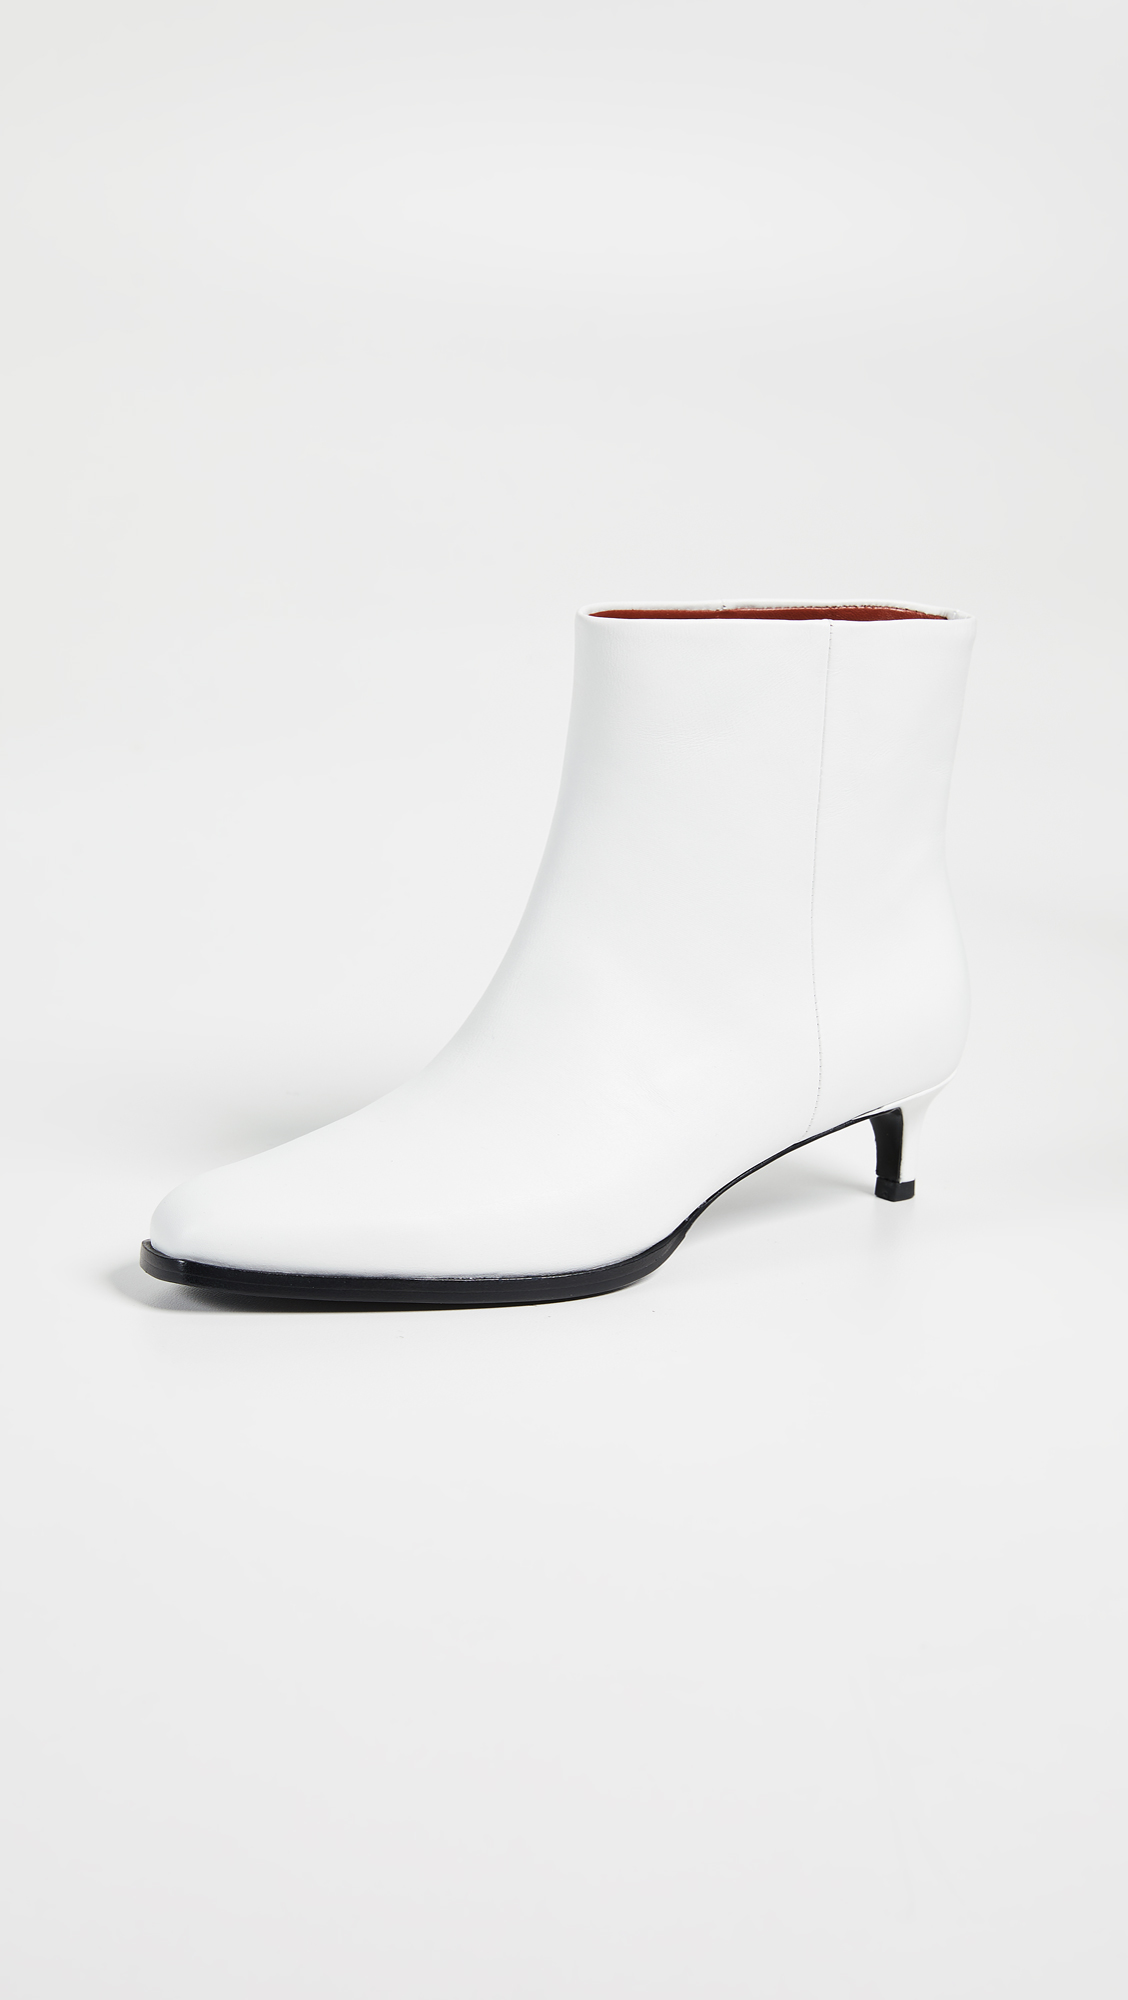 3.1 Phillip Lim Agatha Ankle Booties - Optic White